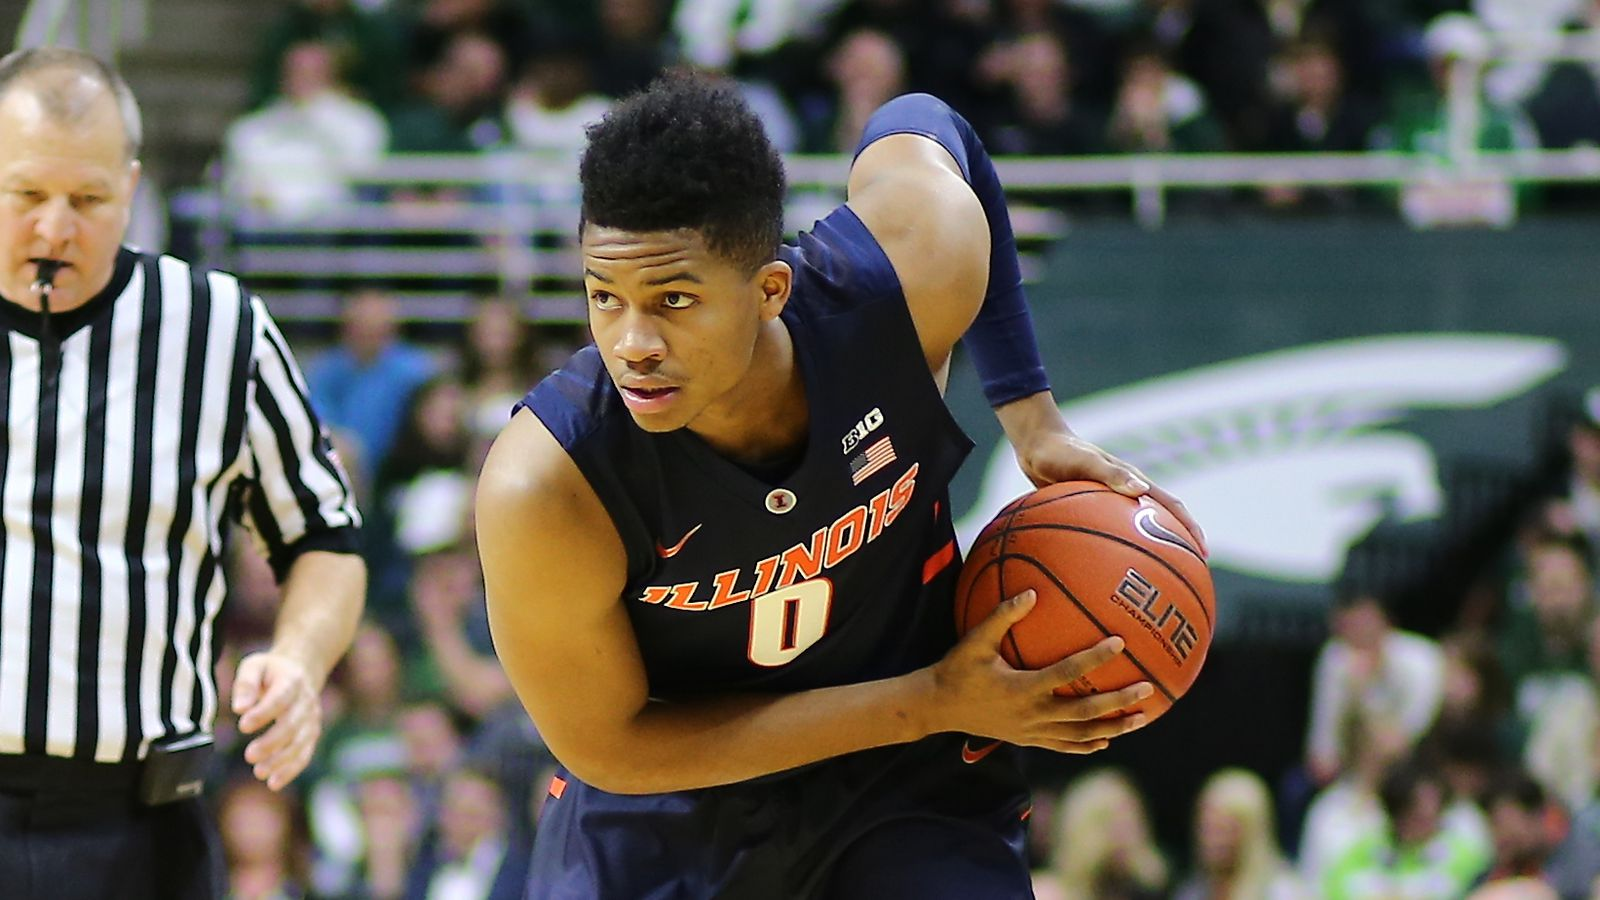 Former Illinois Basketball wing D.J. Williams will ...